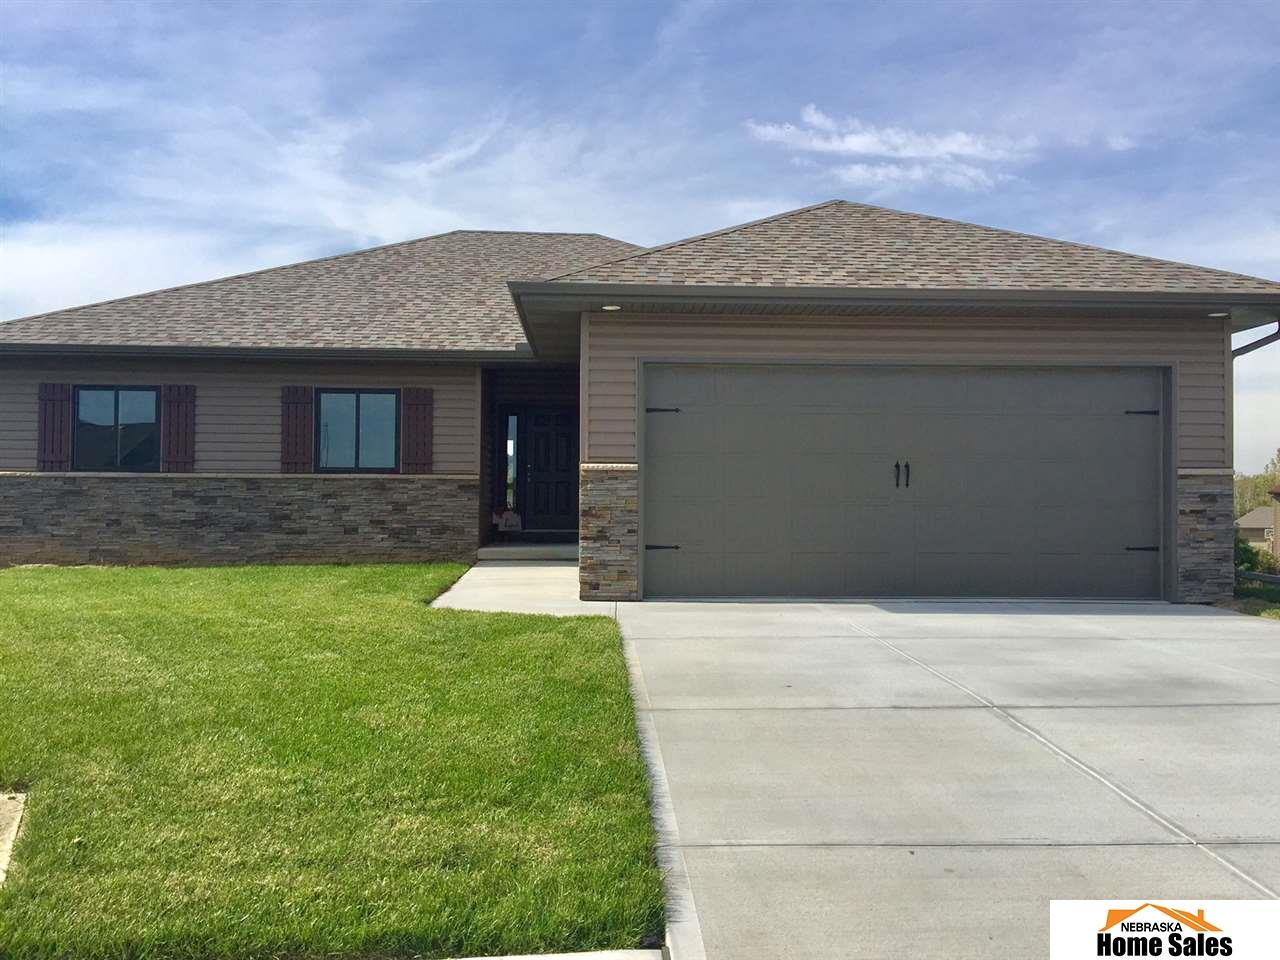 2346 Hickory Cir, Blair, NE 68008